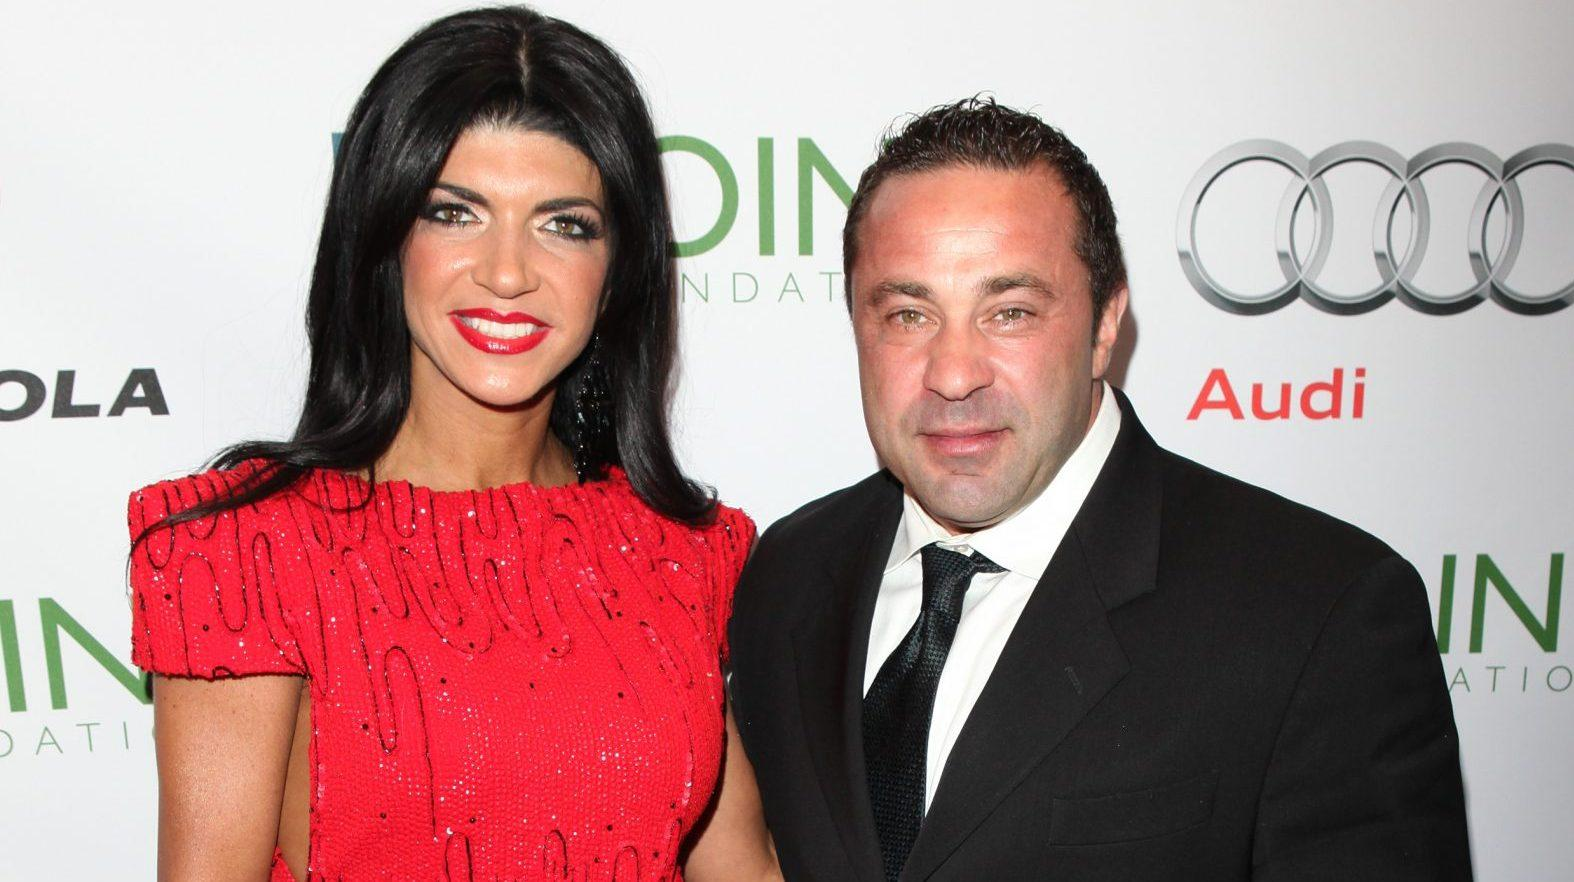 Teresa Giudice Thinks There's Nothing Wrong With Flirting With Other Guys While Hubby Joe Is Still In Prison